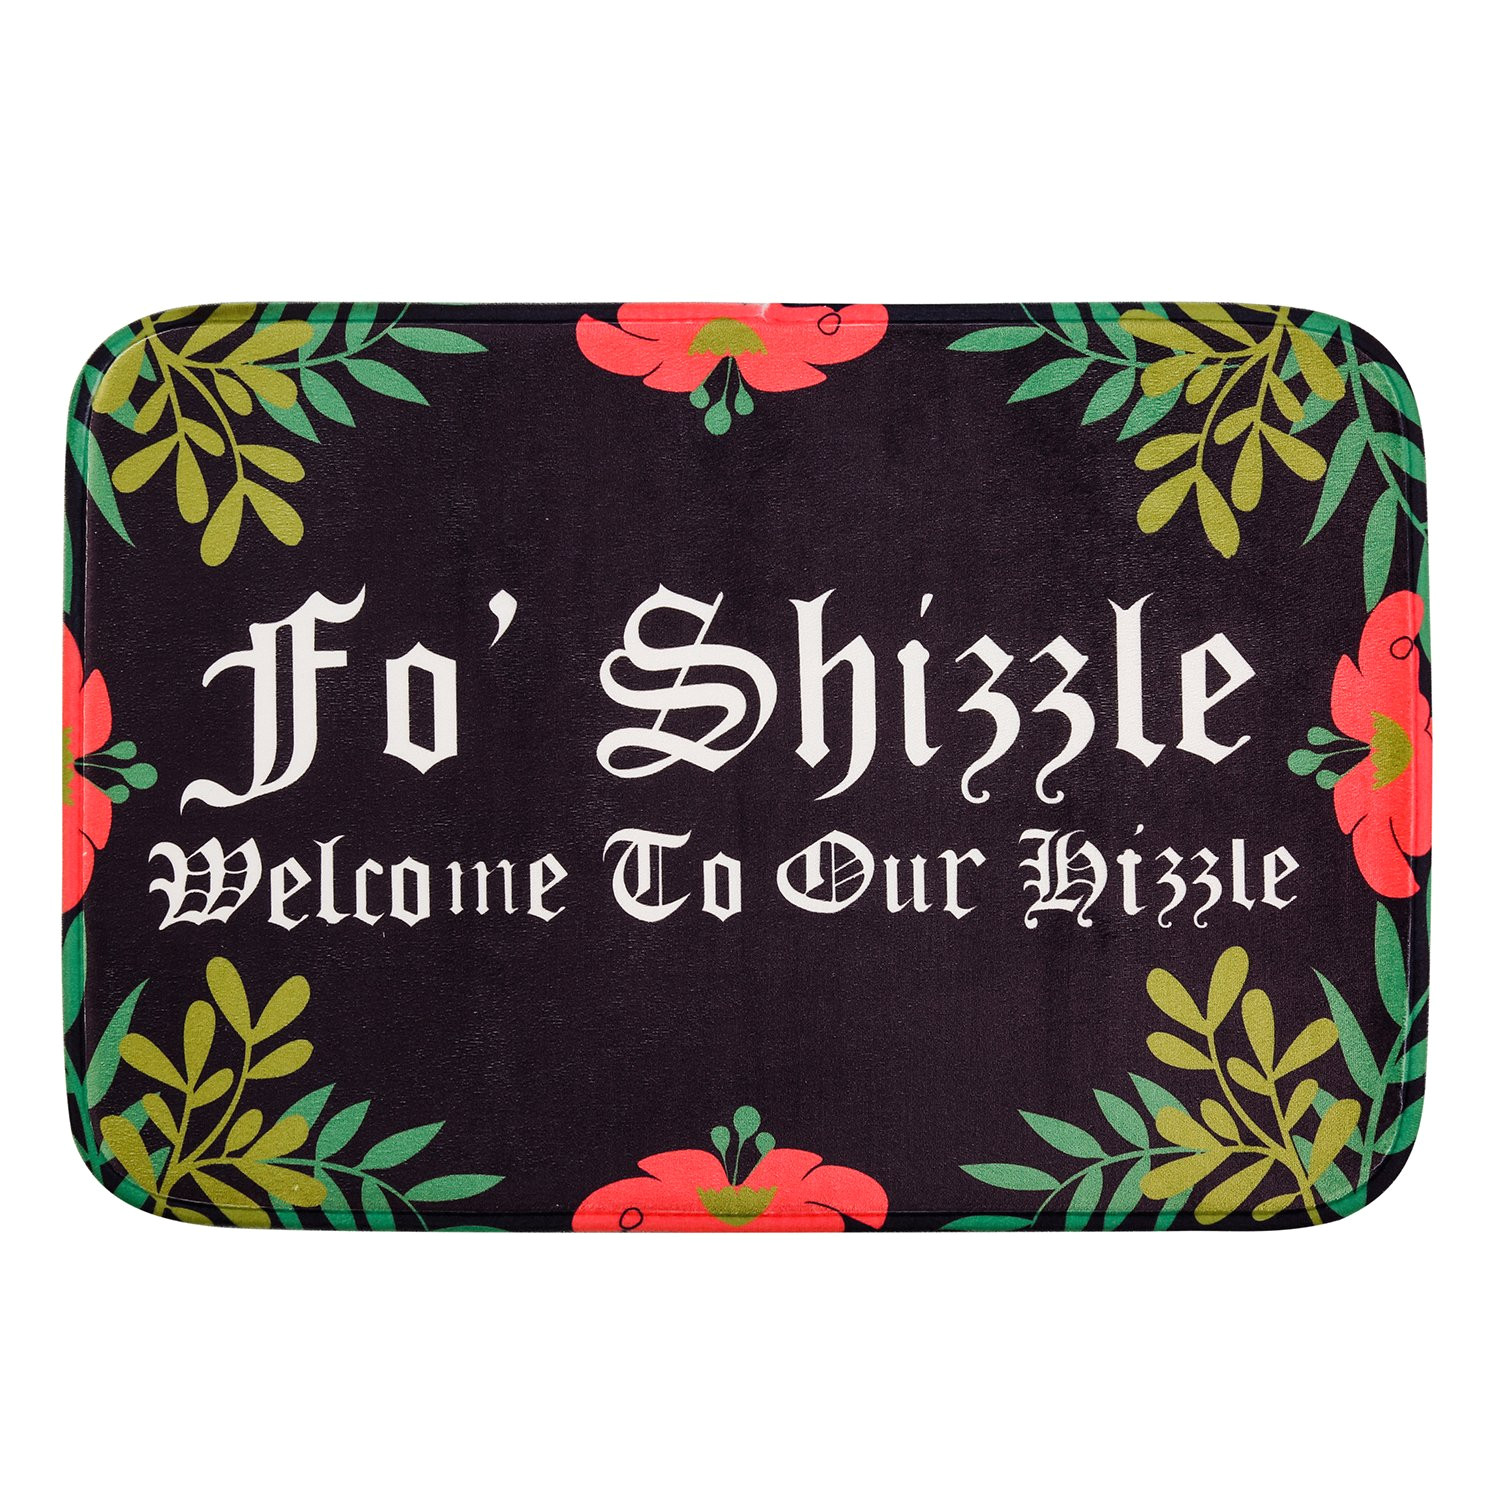 amazon com hui shop fo shizzle welcome to our hizzle cool absorbent non slip floor rug doormat funny mat garden outdoor